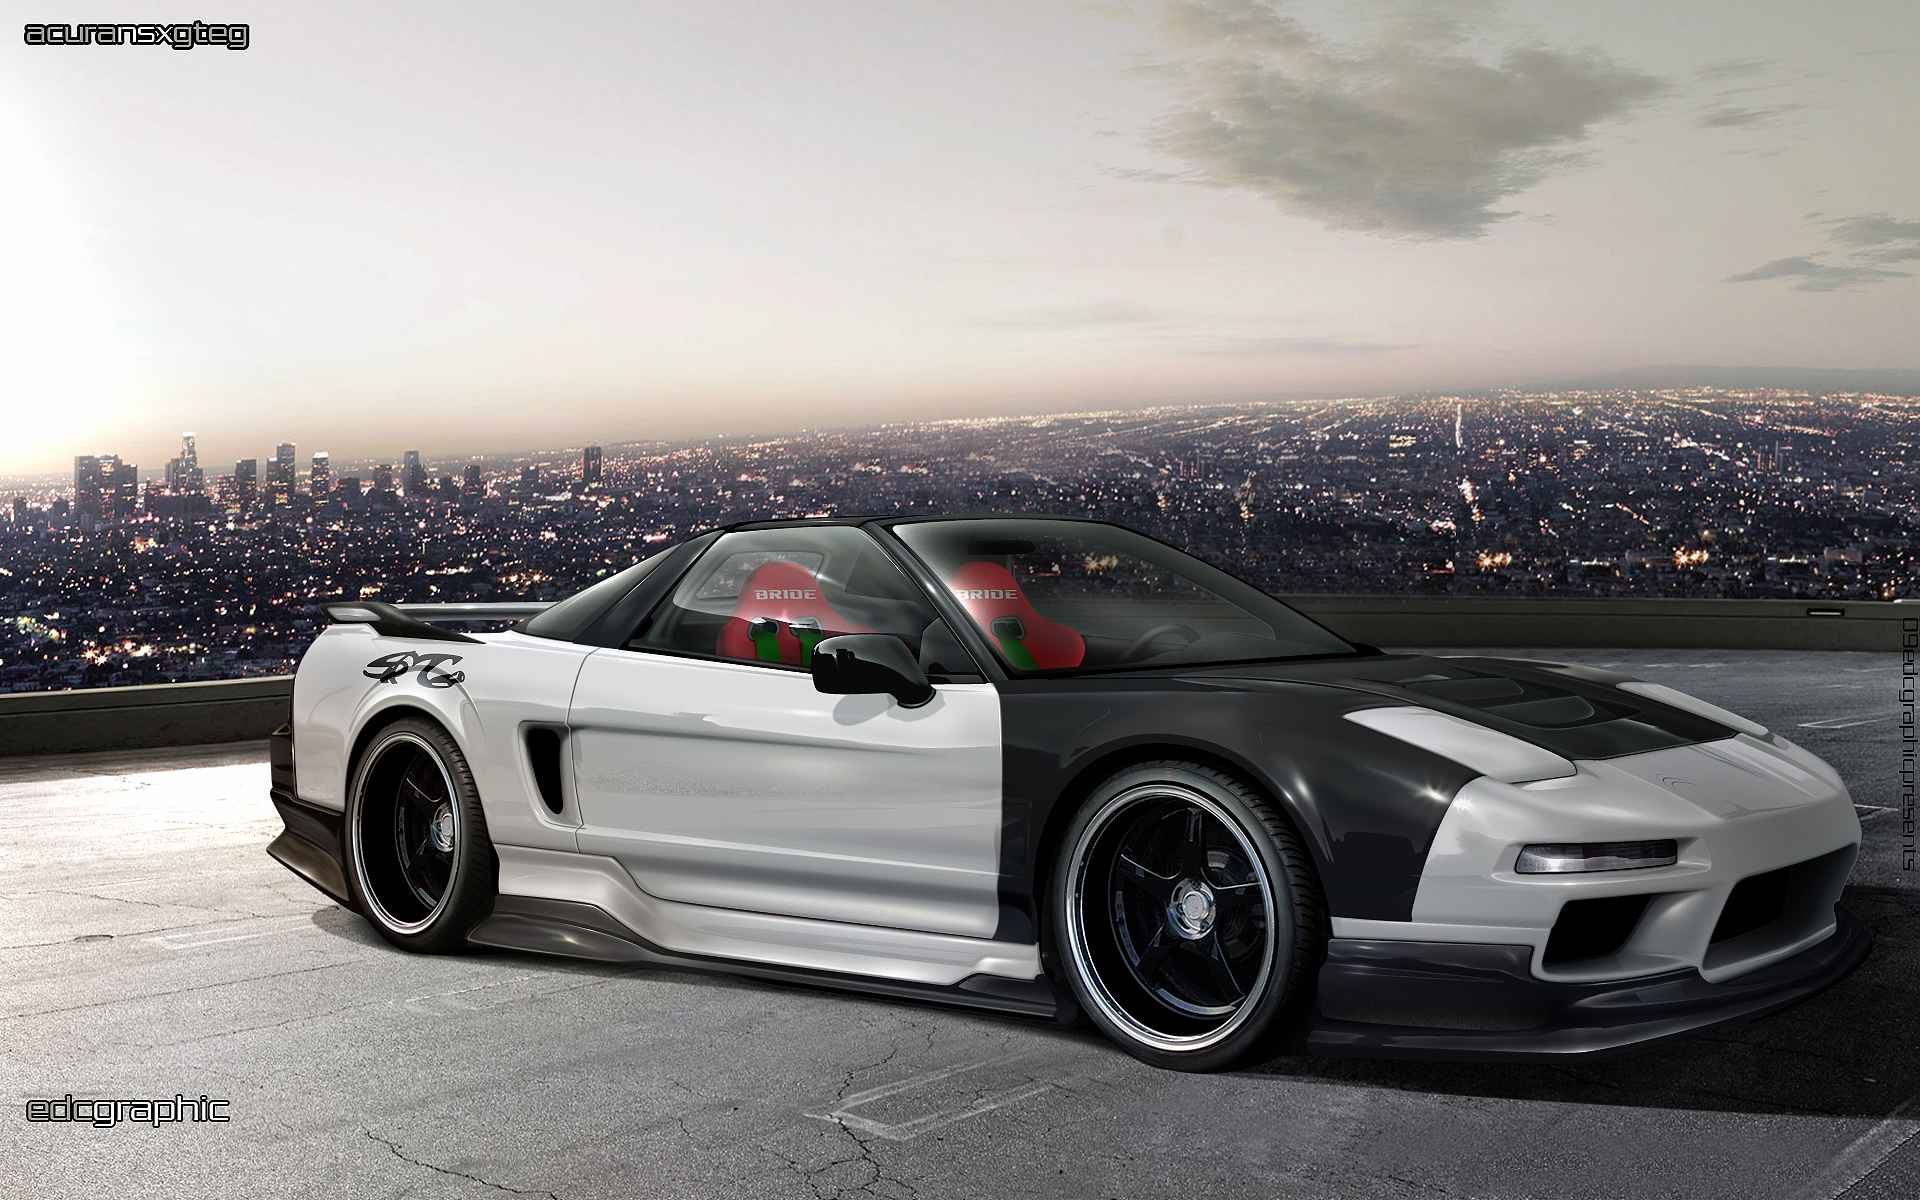 acura nsx by edcgraphic on deviantart. Black Bedroom Furniture Sets. Home Design Ideas